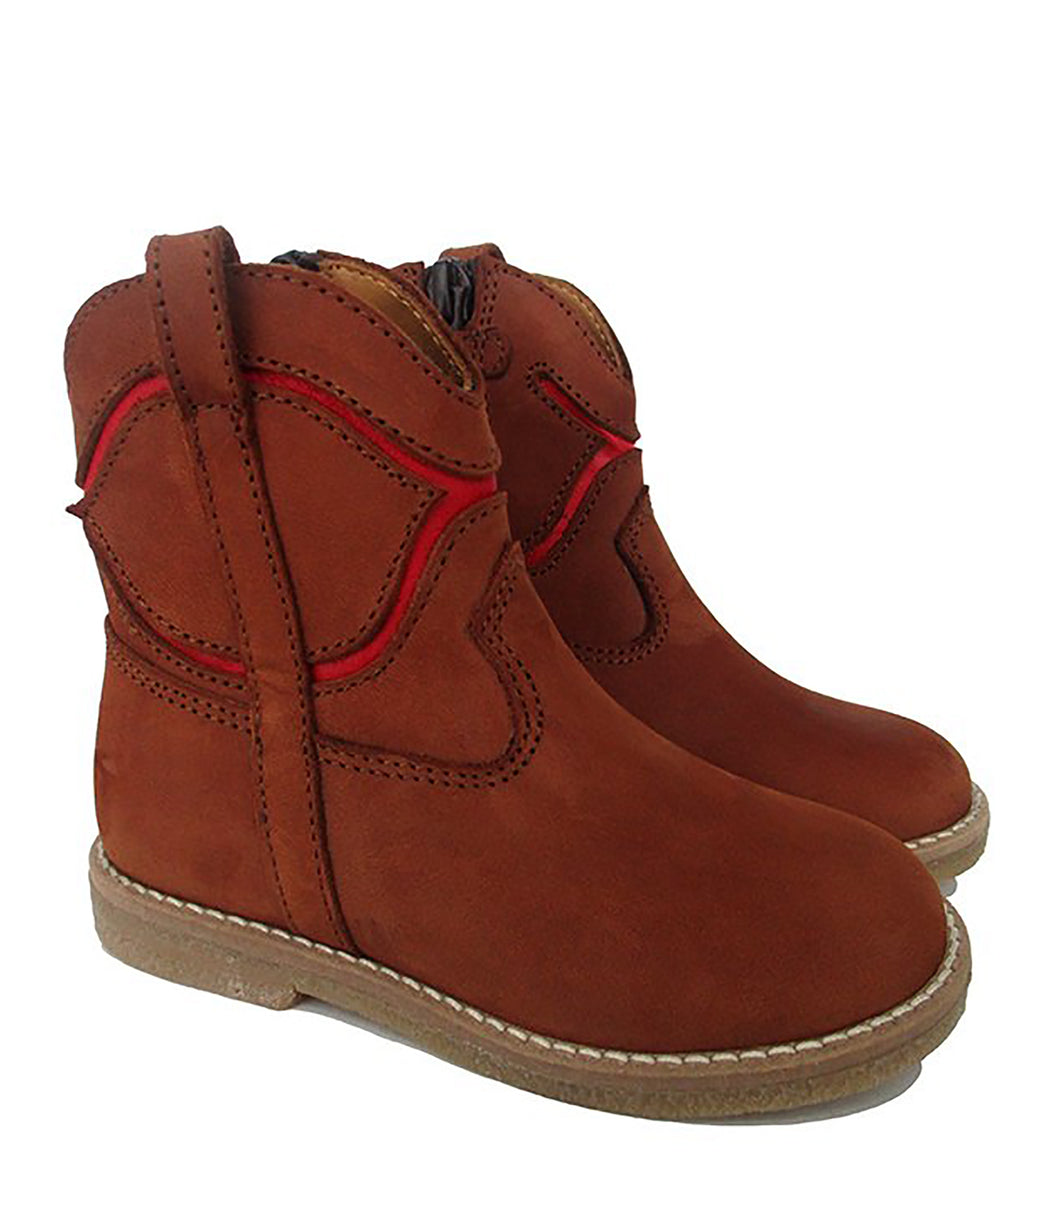 Toddler Boots in Brown and Red Nabuk